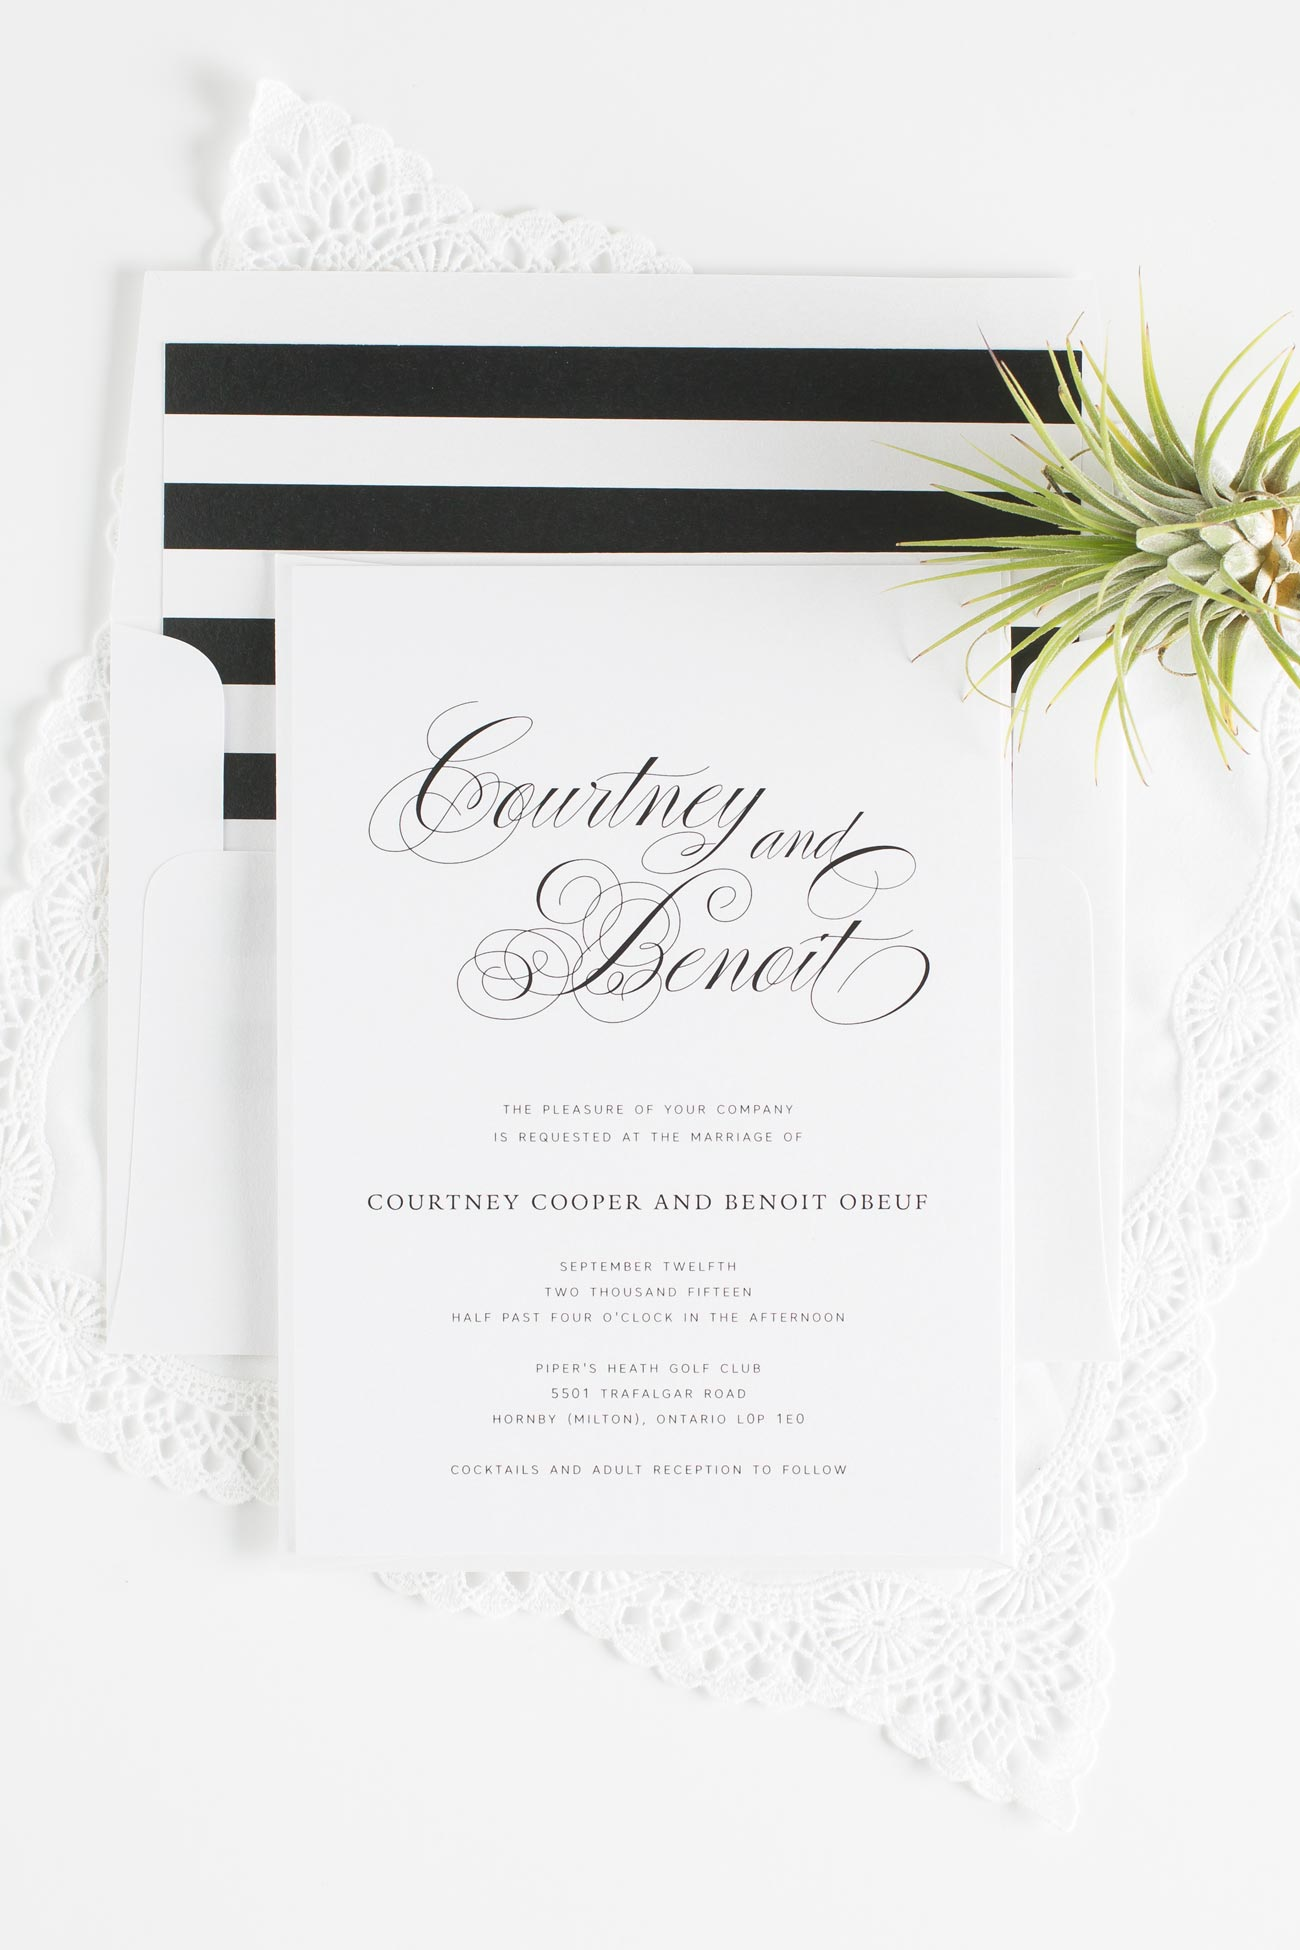 Script Wedding Invitations in Black and White